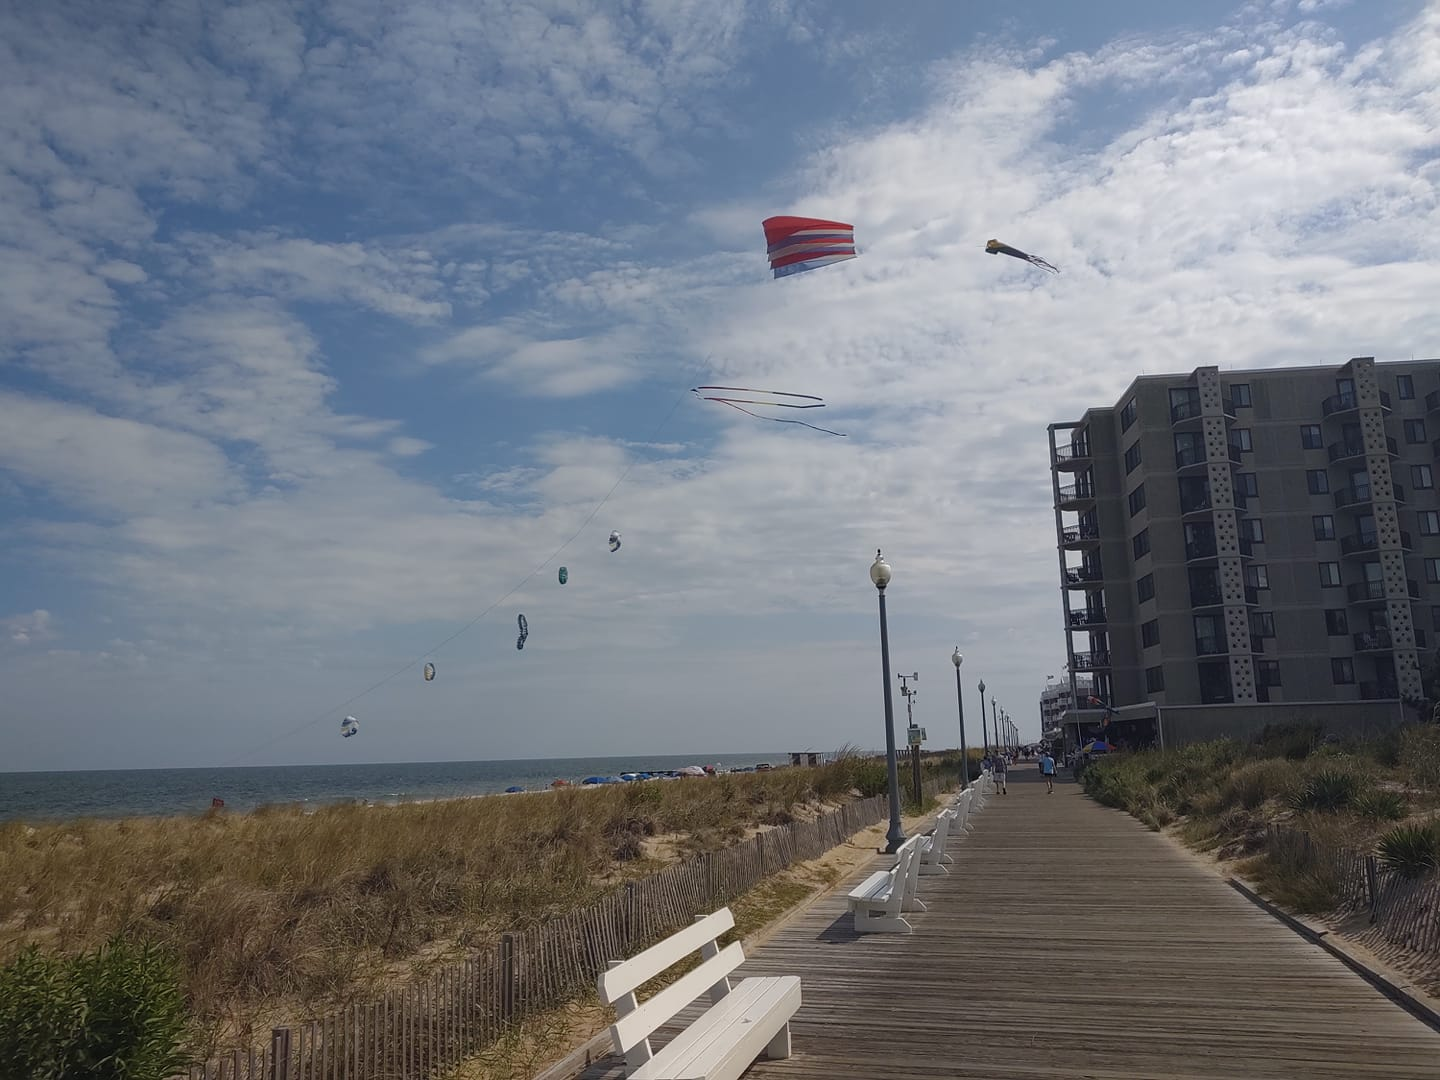 A kite flying above the Rehoboth Boardwalk, 9-19.